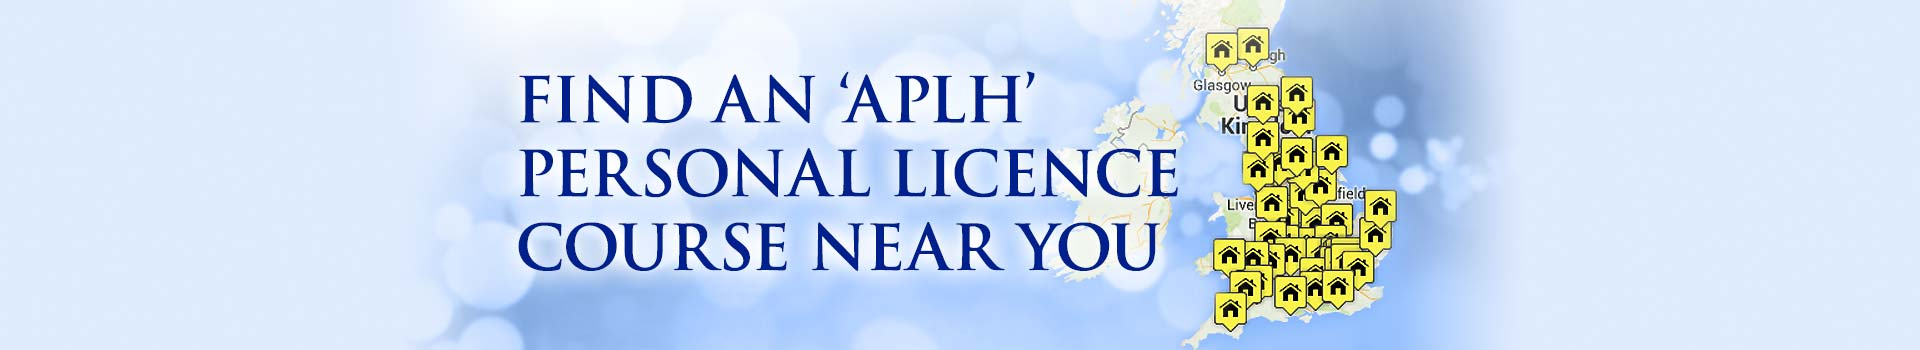 aplh personal licence courses